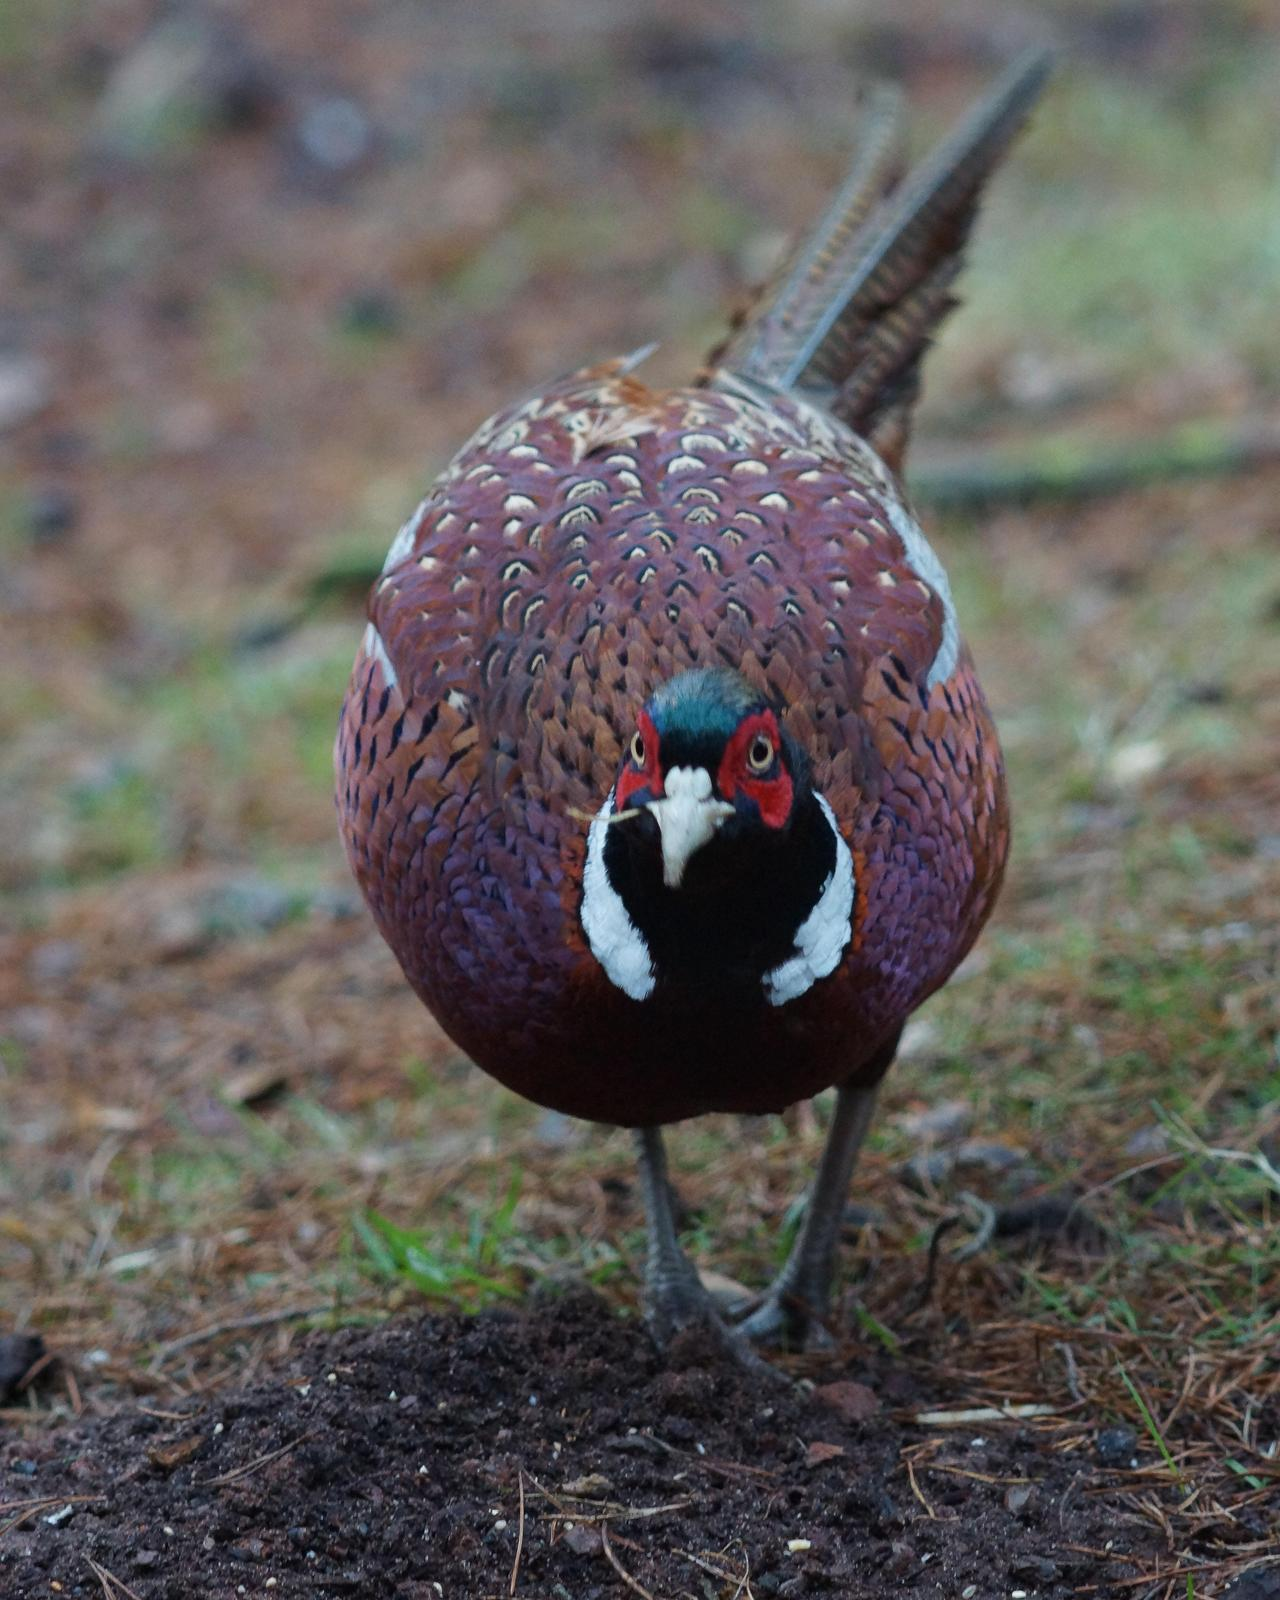 Ring-necked Pheasant Photo by Steve Percival